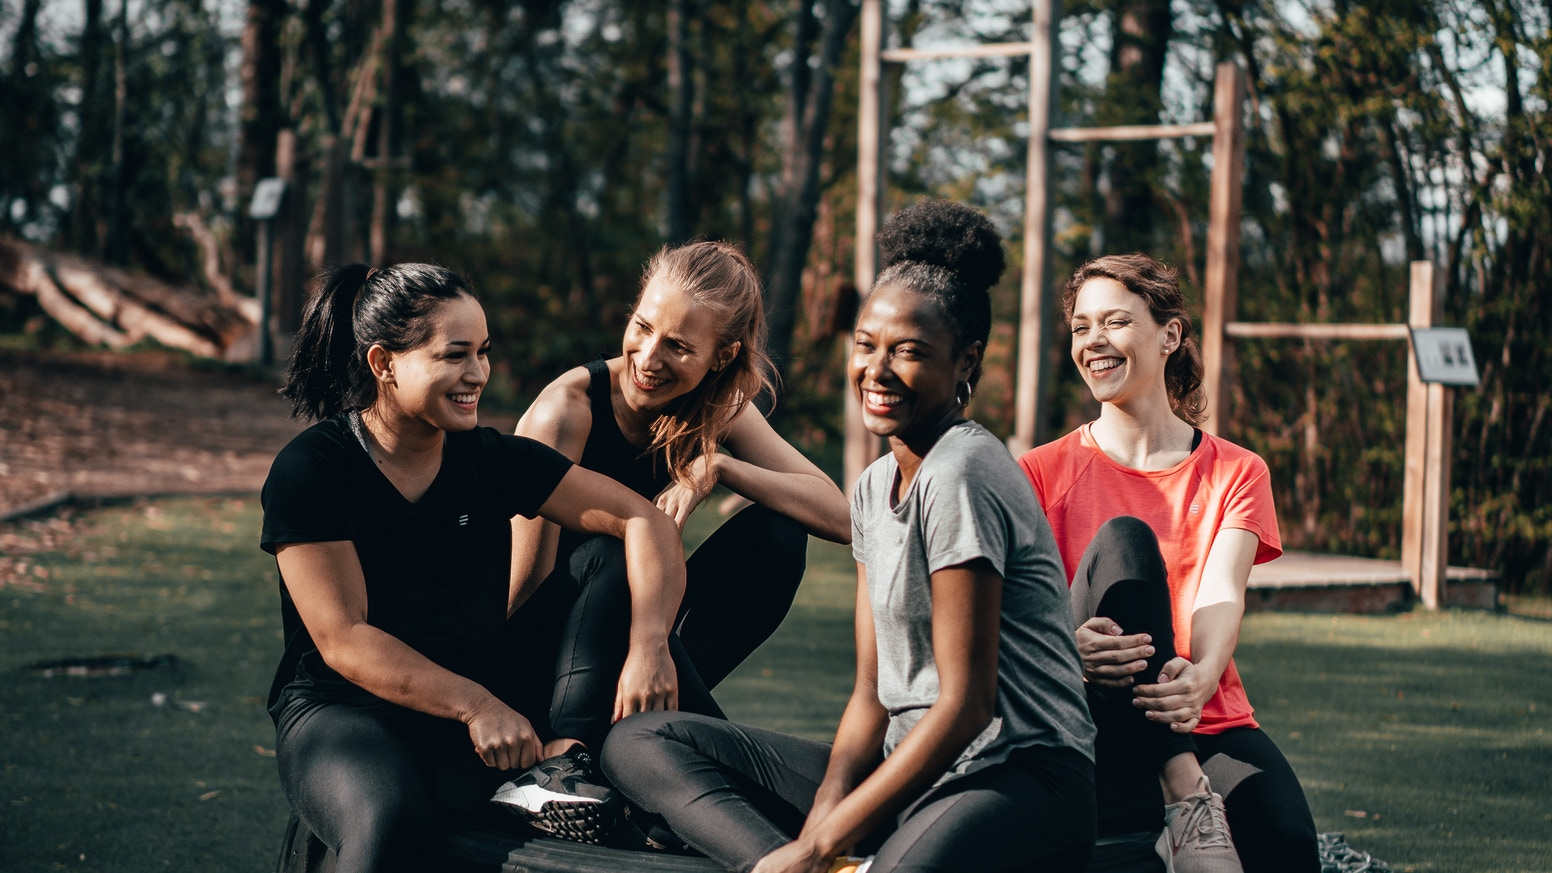 Sustainable, High-performing & Comfortable Activewear for Every Kind of Workout. Made from Plants, not Harmful Plastic.